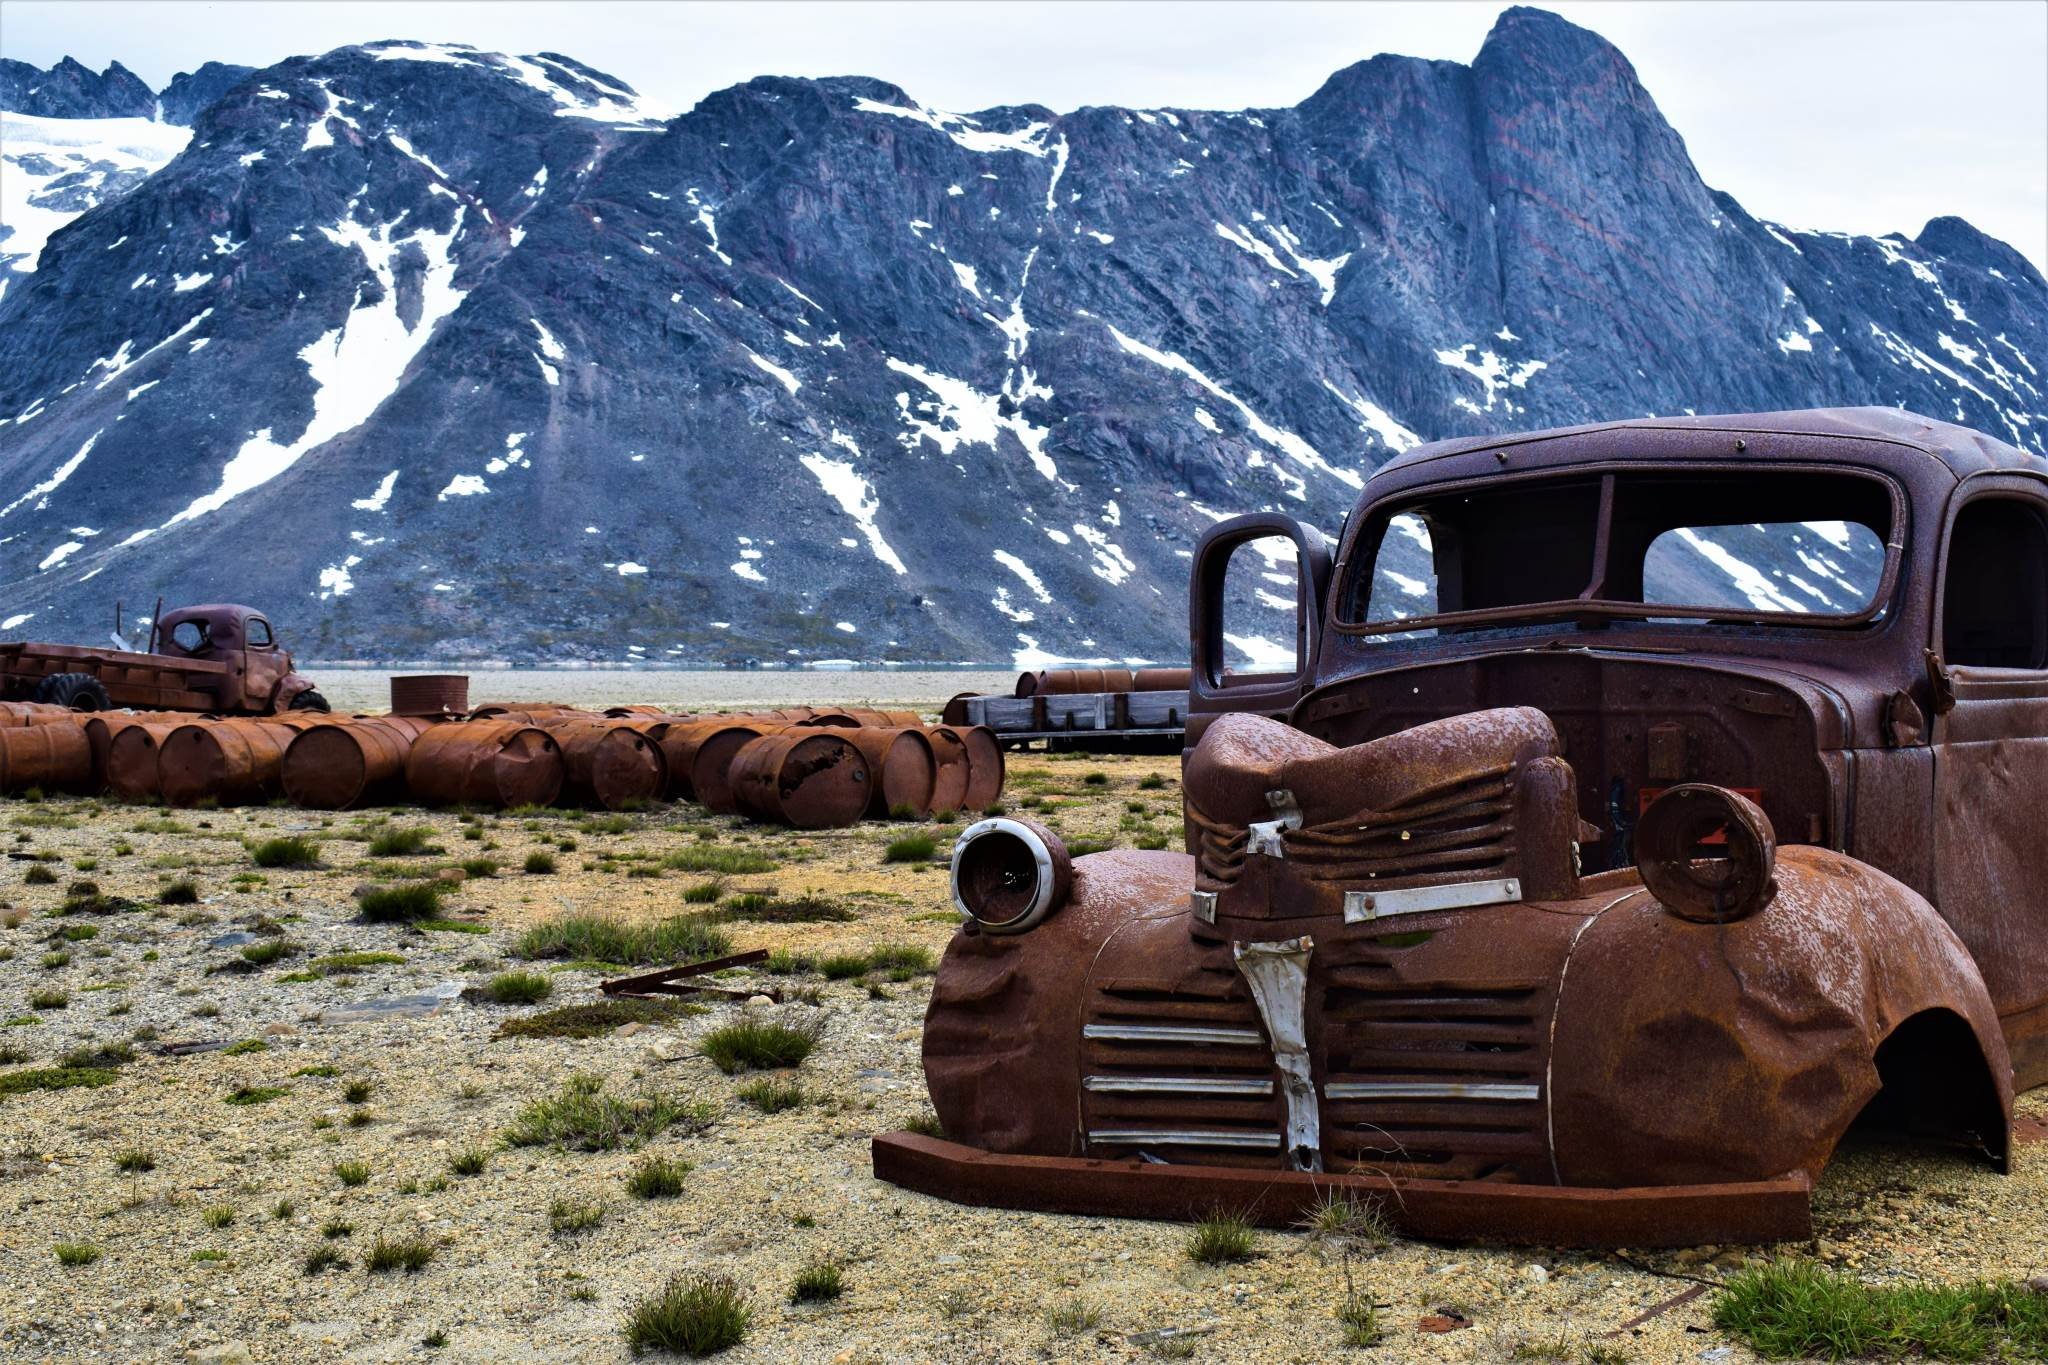 Old truck at the abandoned Bluie East 2 base